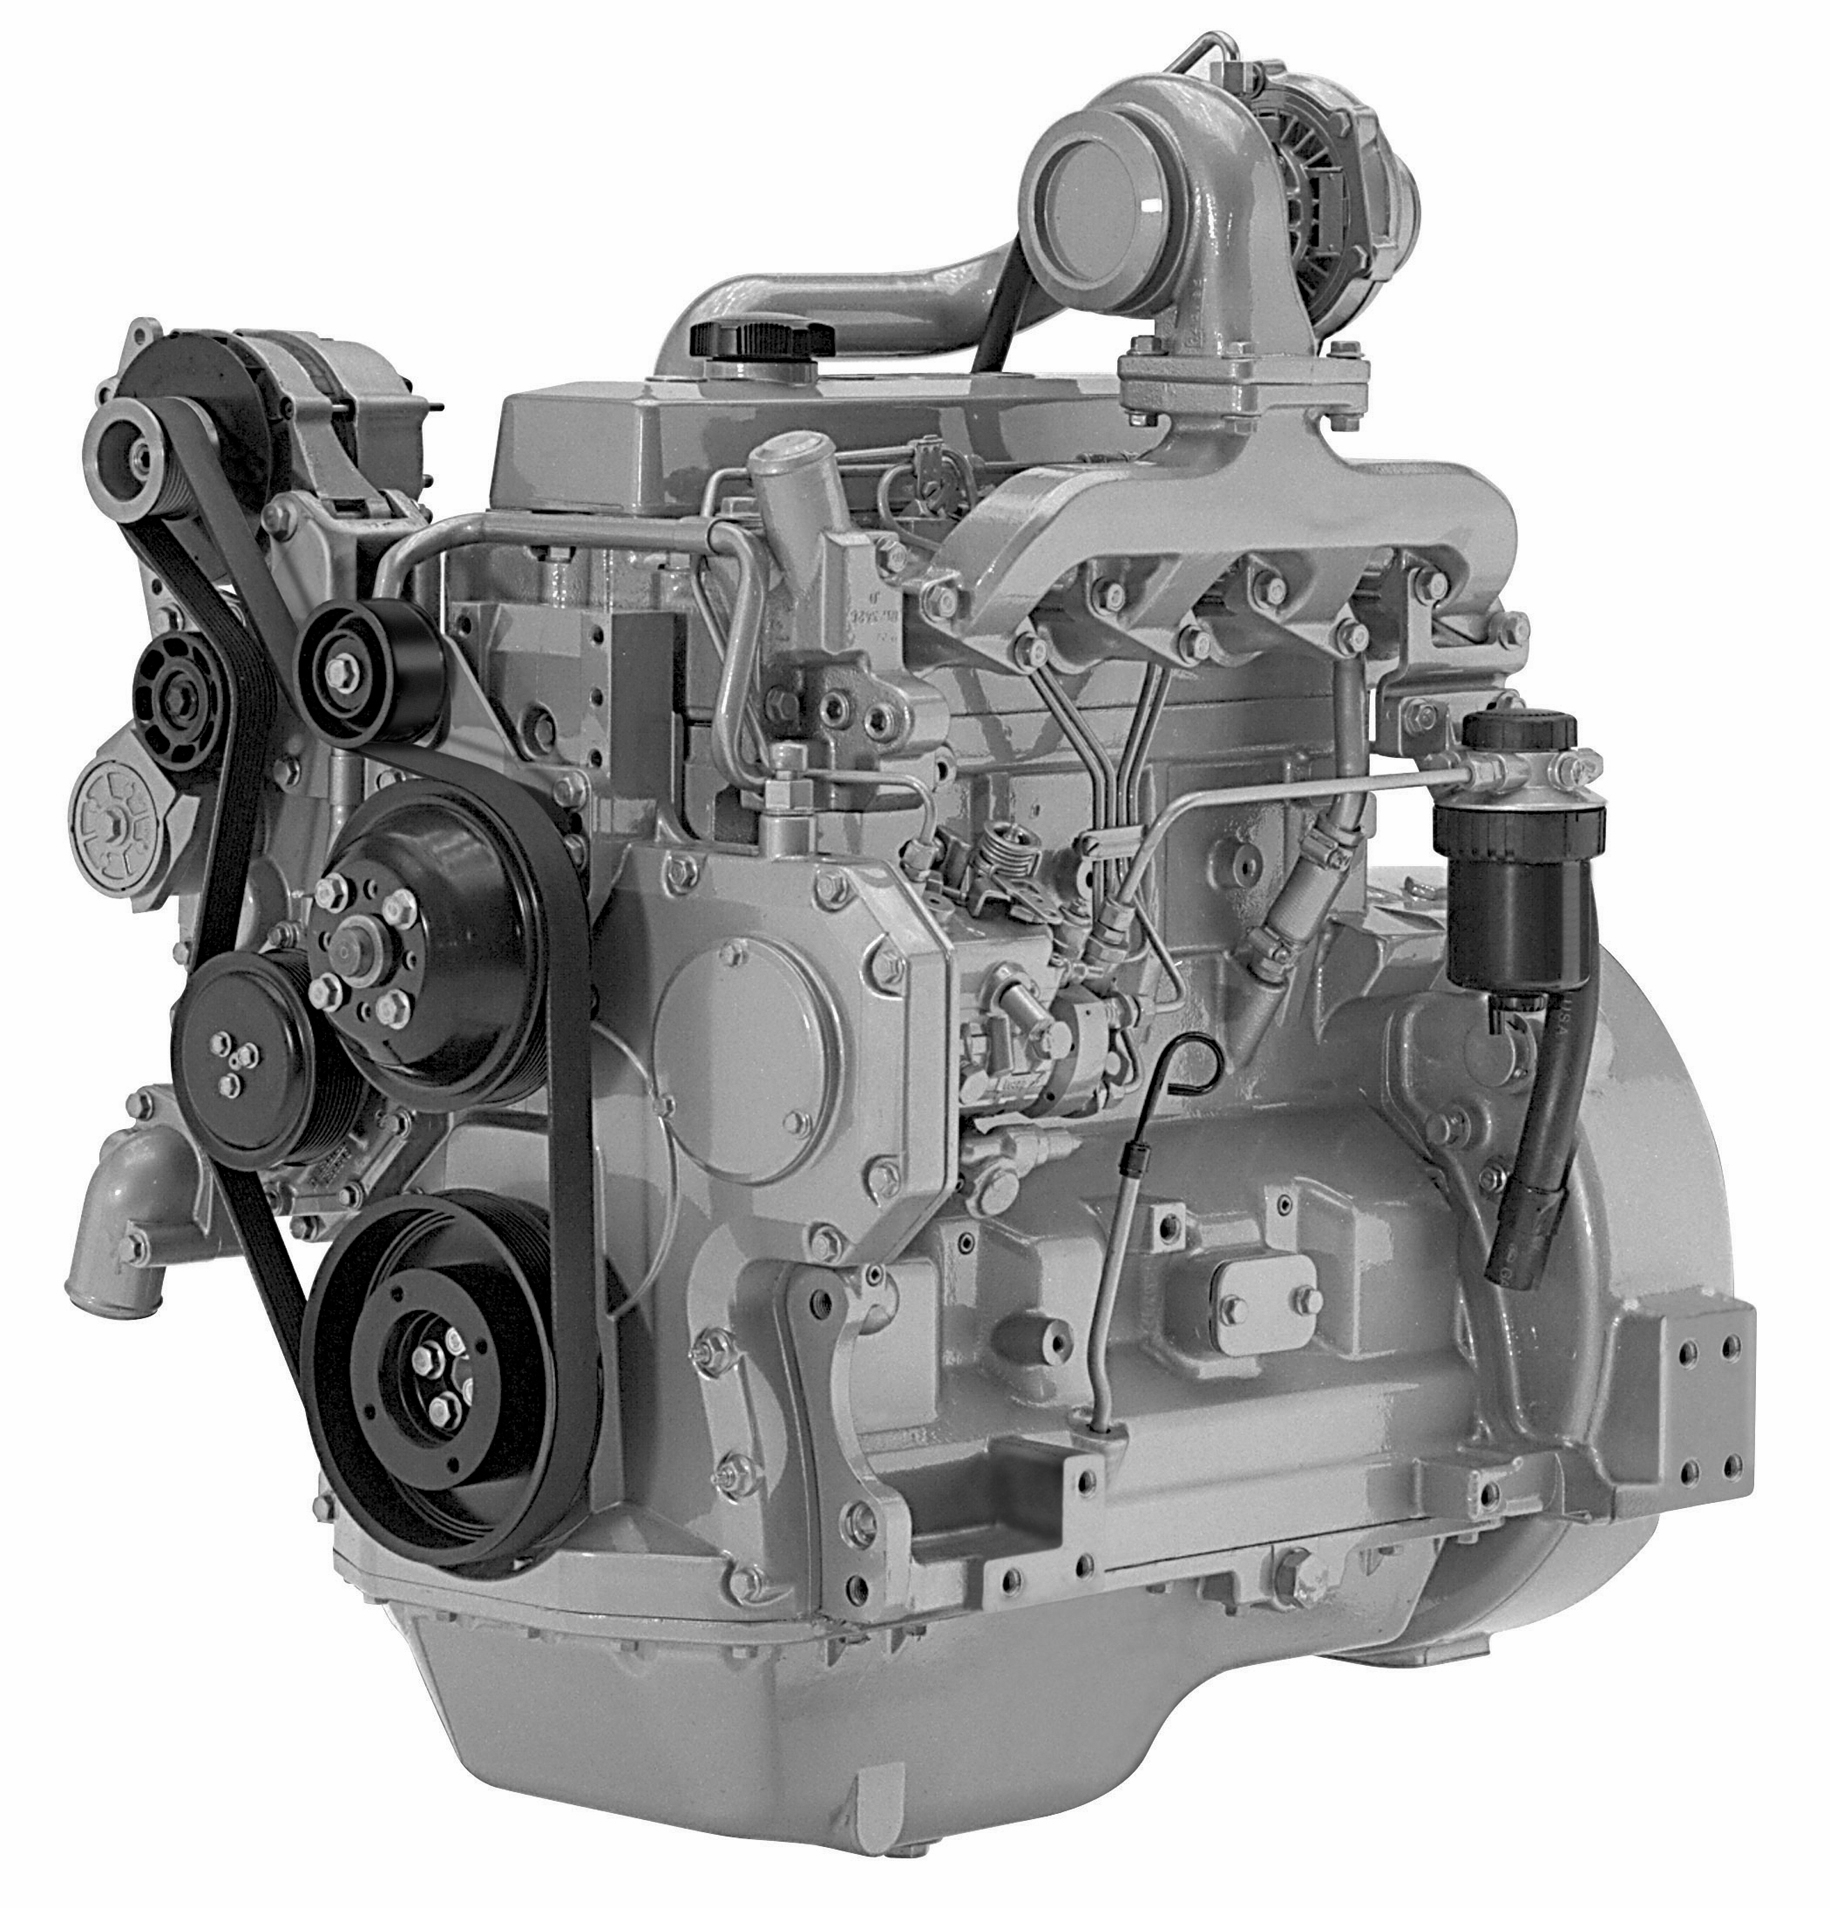 John Deere Engines : Remanufactured john deere tf hf diesel engine no ecu